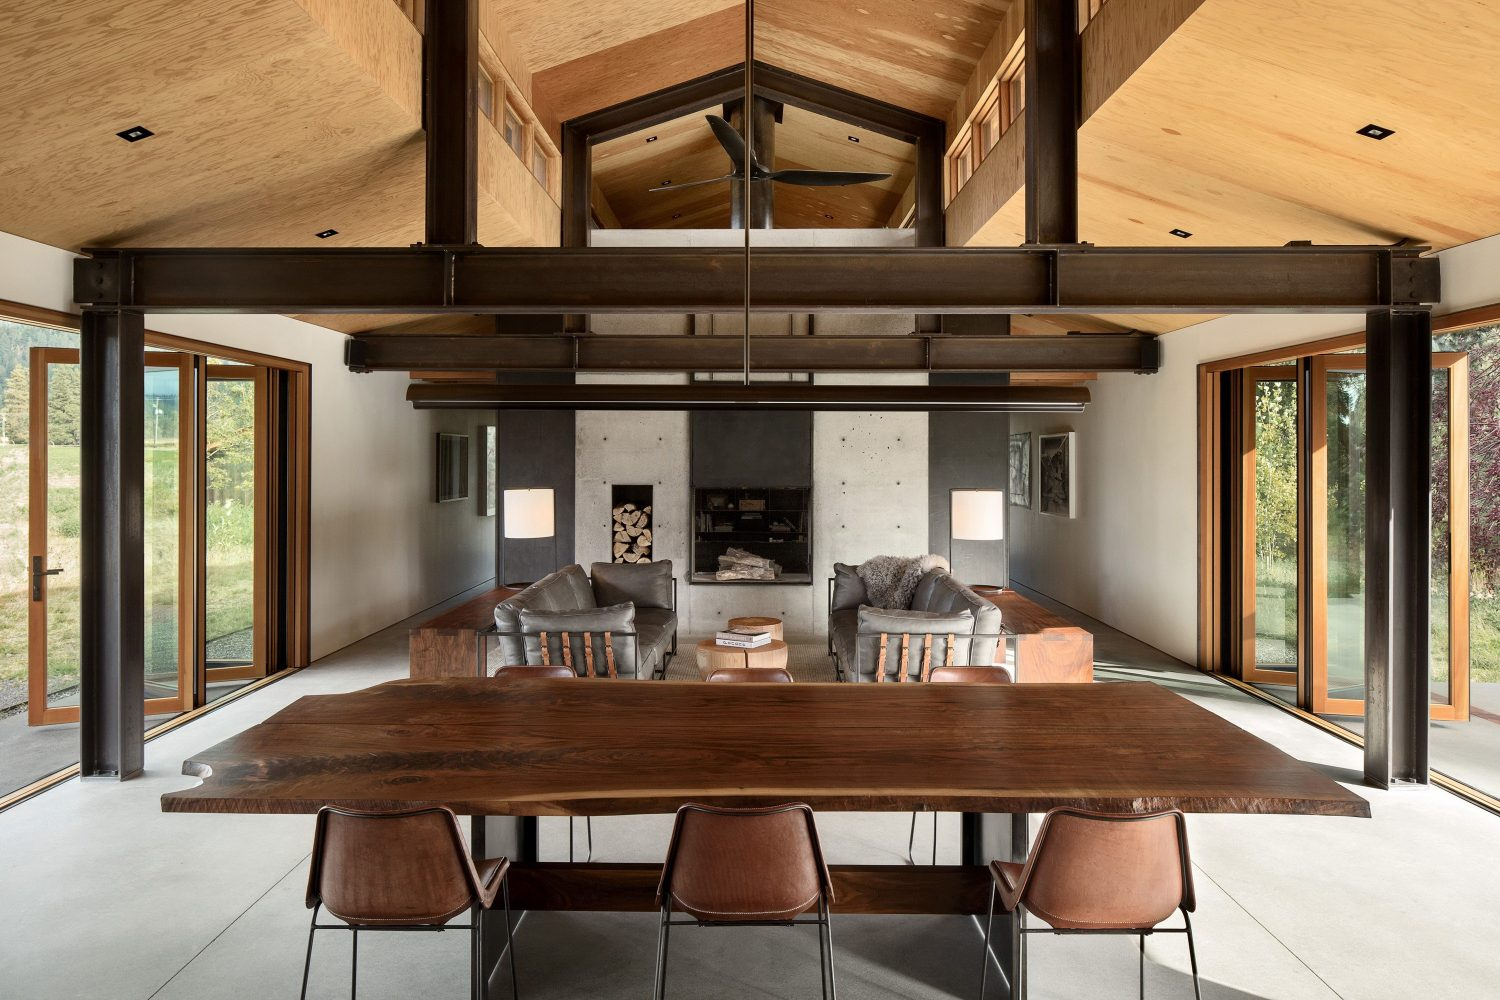 Trout Lake House by Olson Kundig